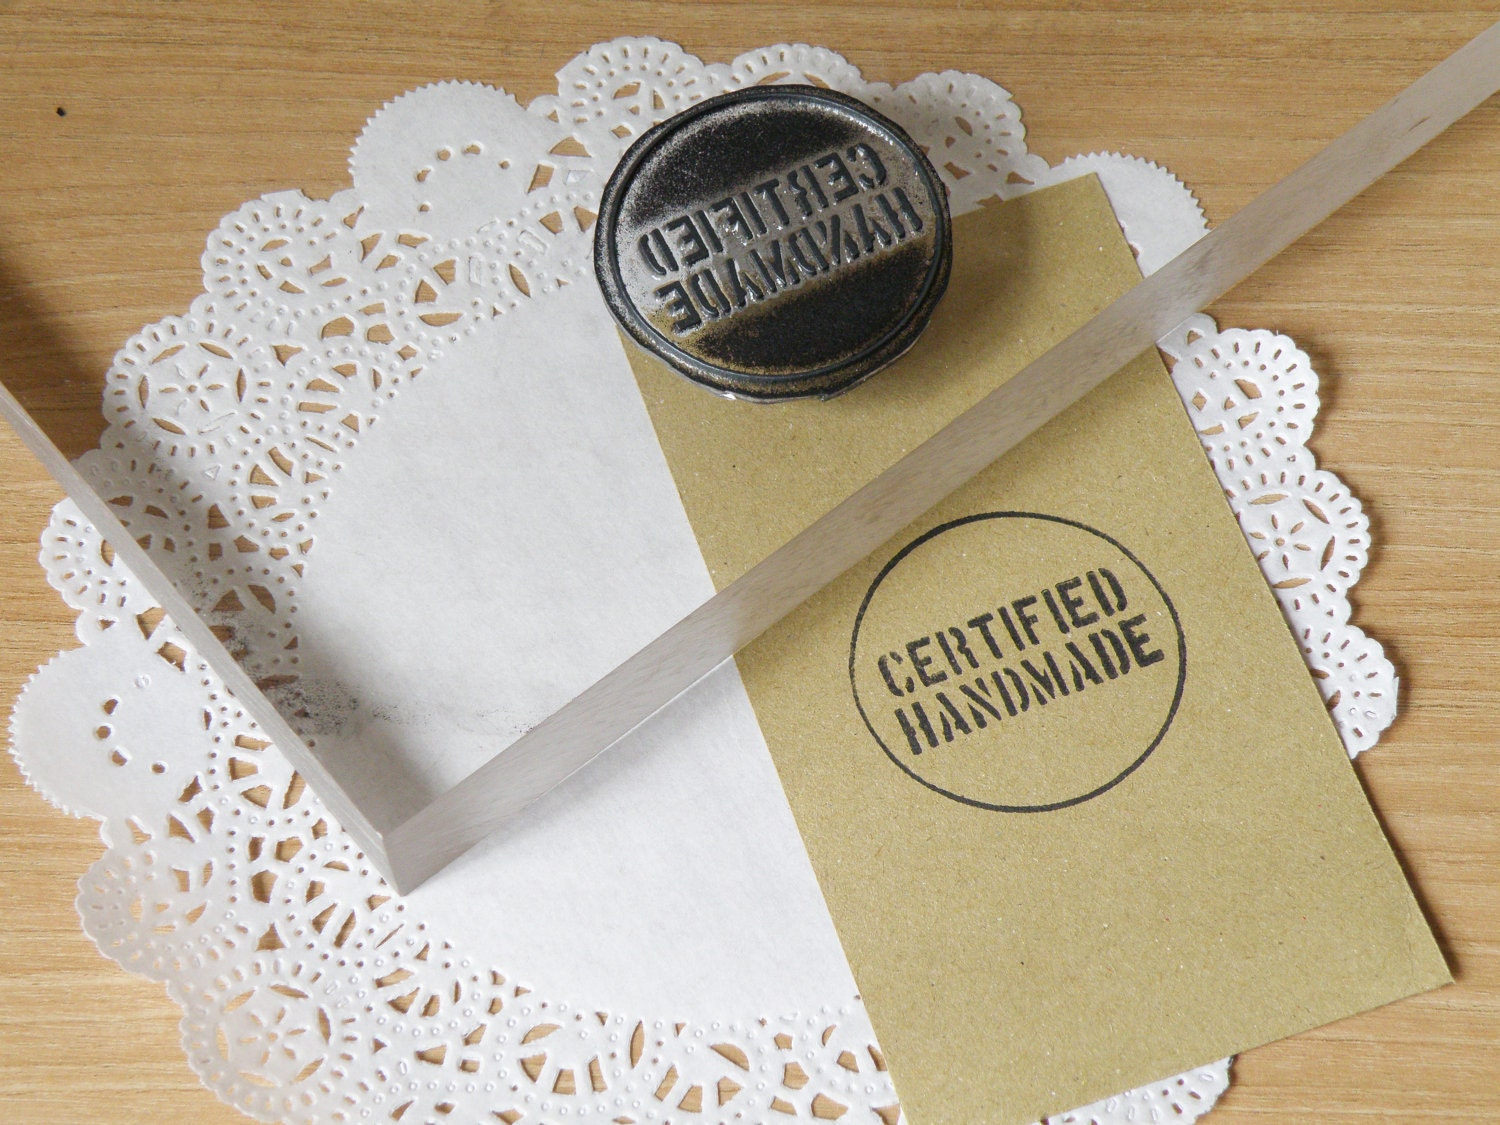 Certified Handmade Clear Polymer Rubber Stamp